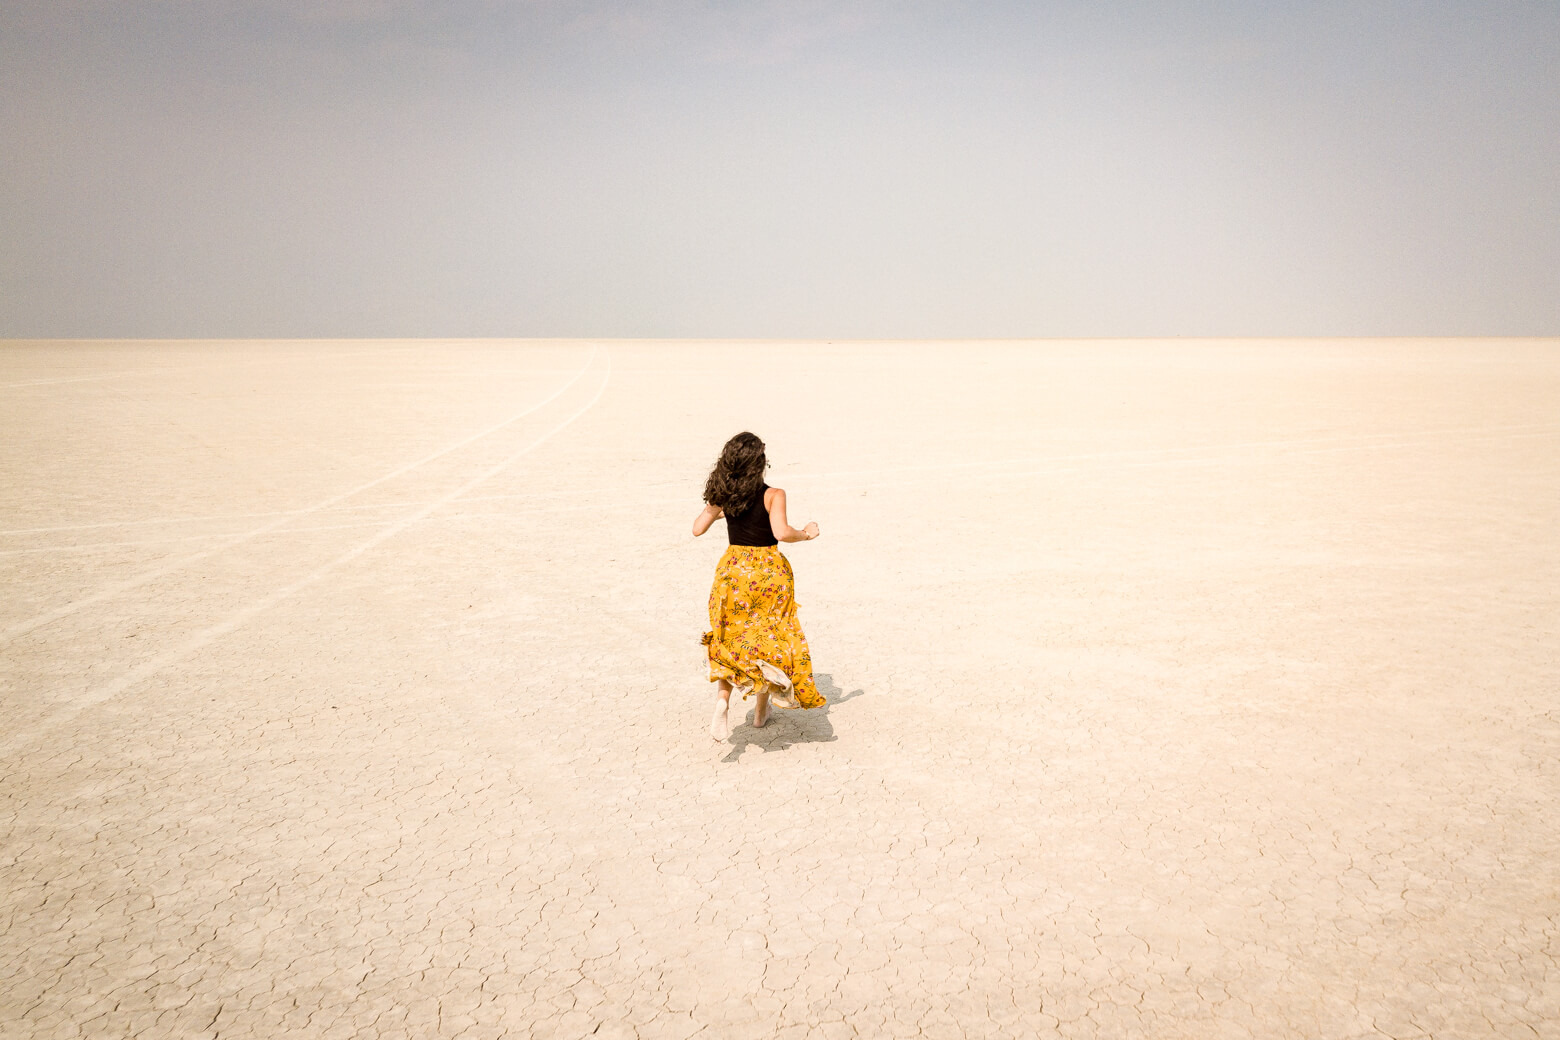 Women running in Alvord Desert